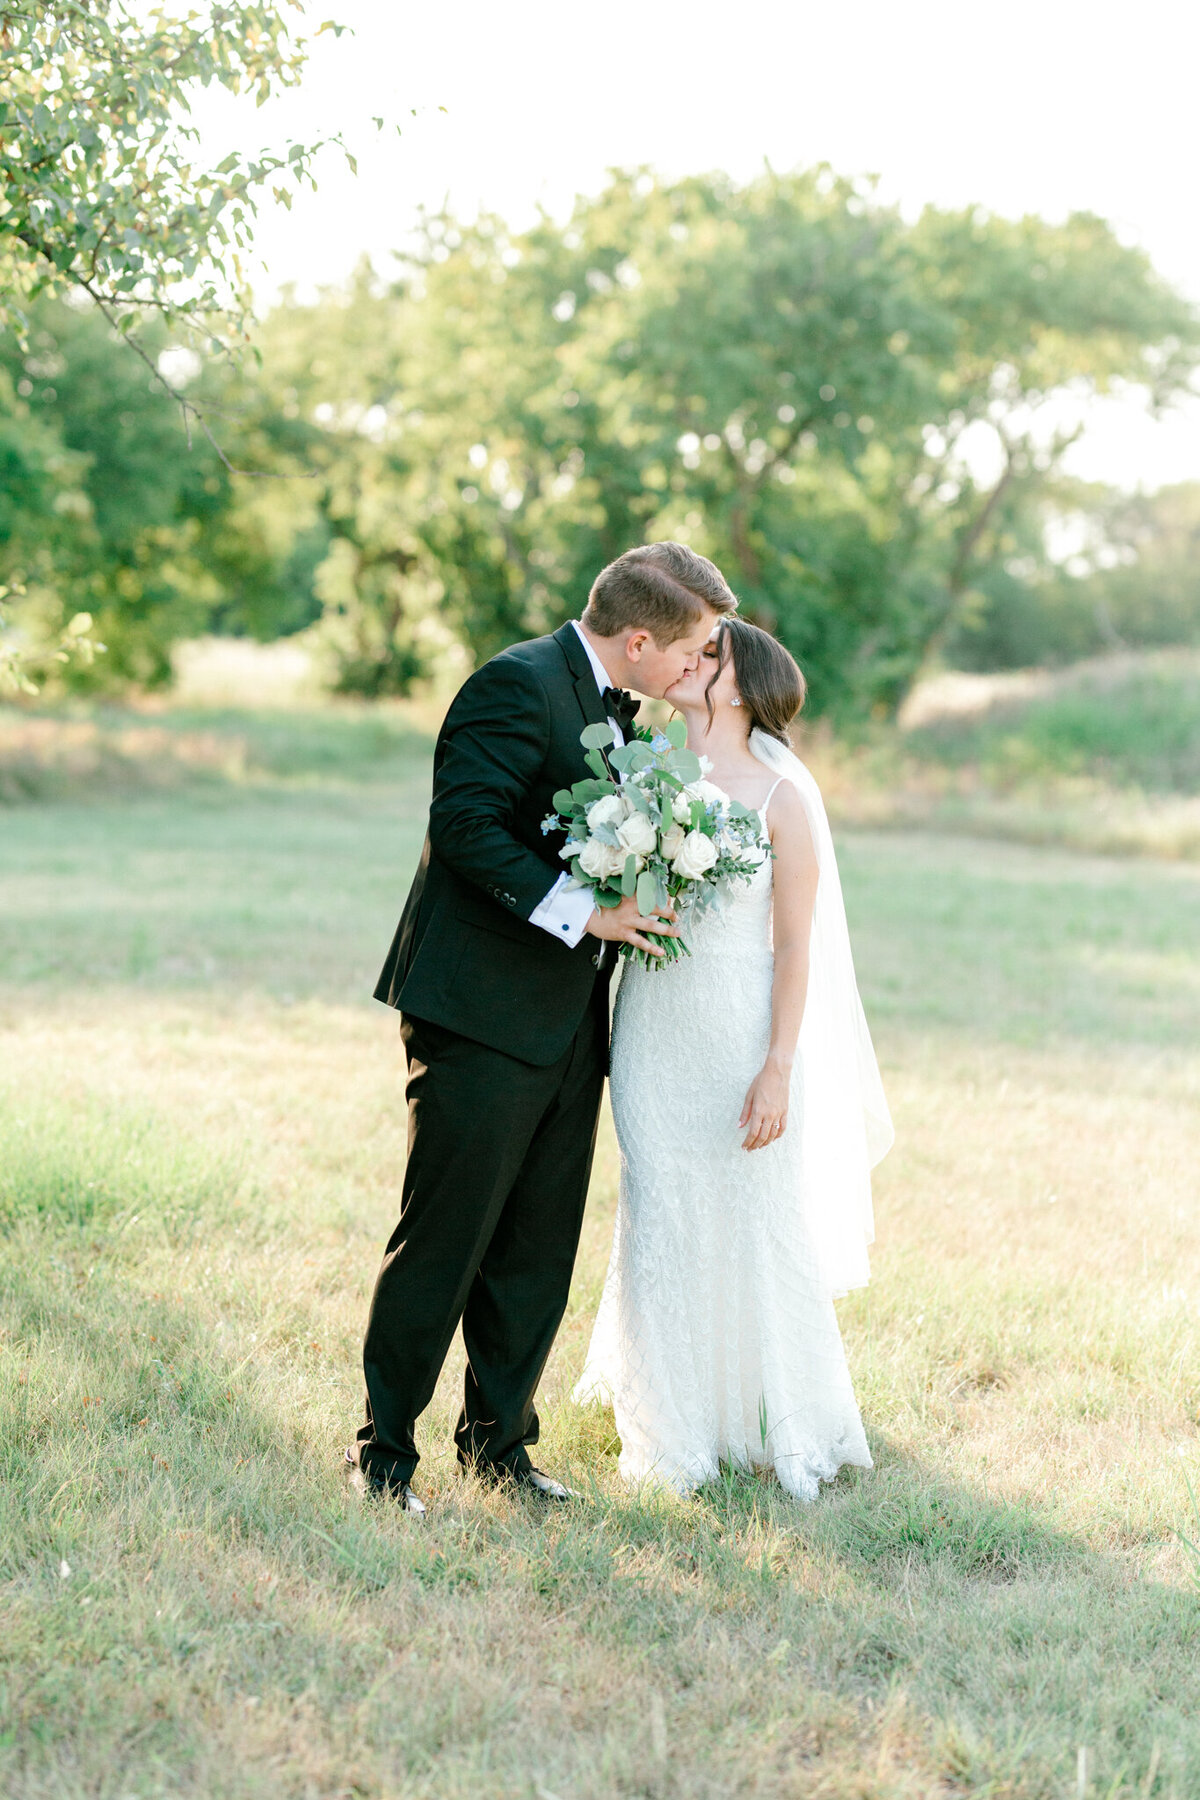 Anna & Billy's Wedding at The Nest at Ruth Farms | Dallas Wedding Photographer | Sami Kathryn Photography-167